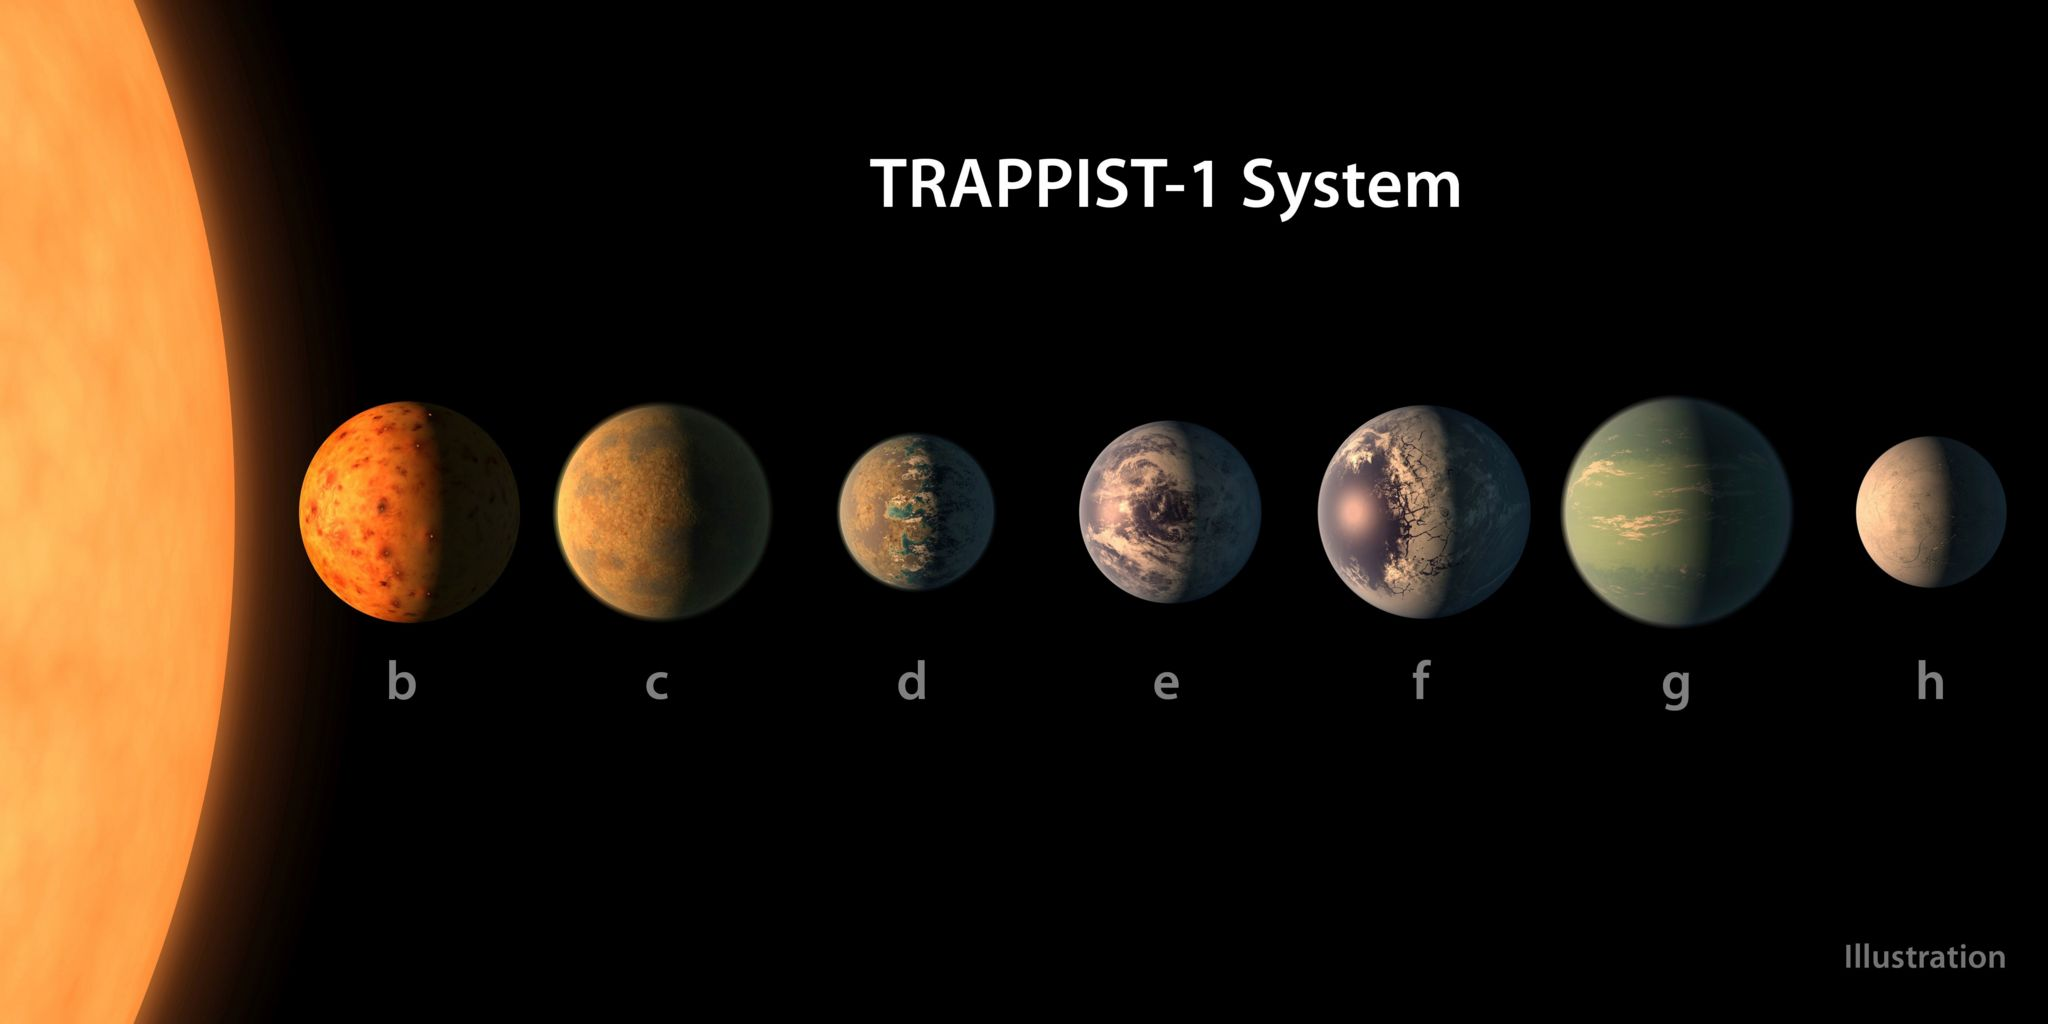 This illustration provided by NASA/JPL-Caltech shows an artist's conception of what the TRAPPIST-1 planetary system may look like, based on available data about their diameters, masses and distances from the host star.